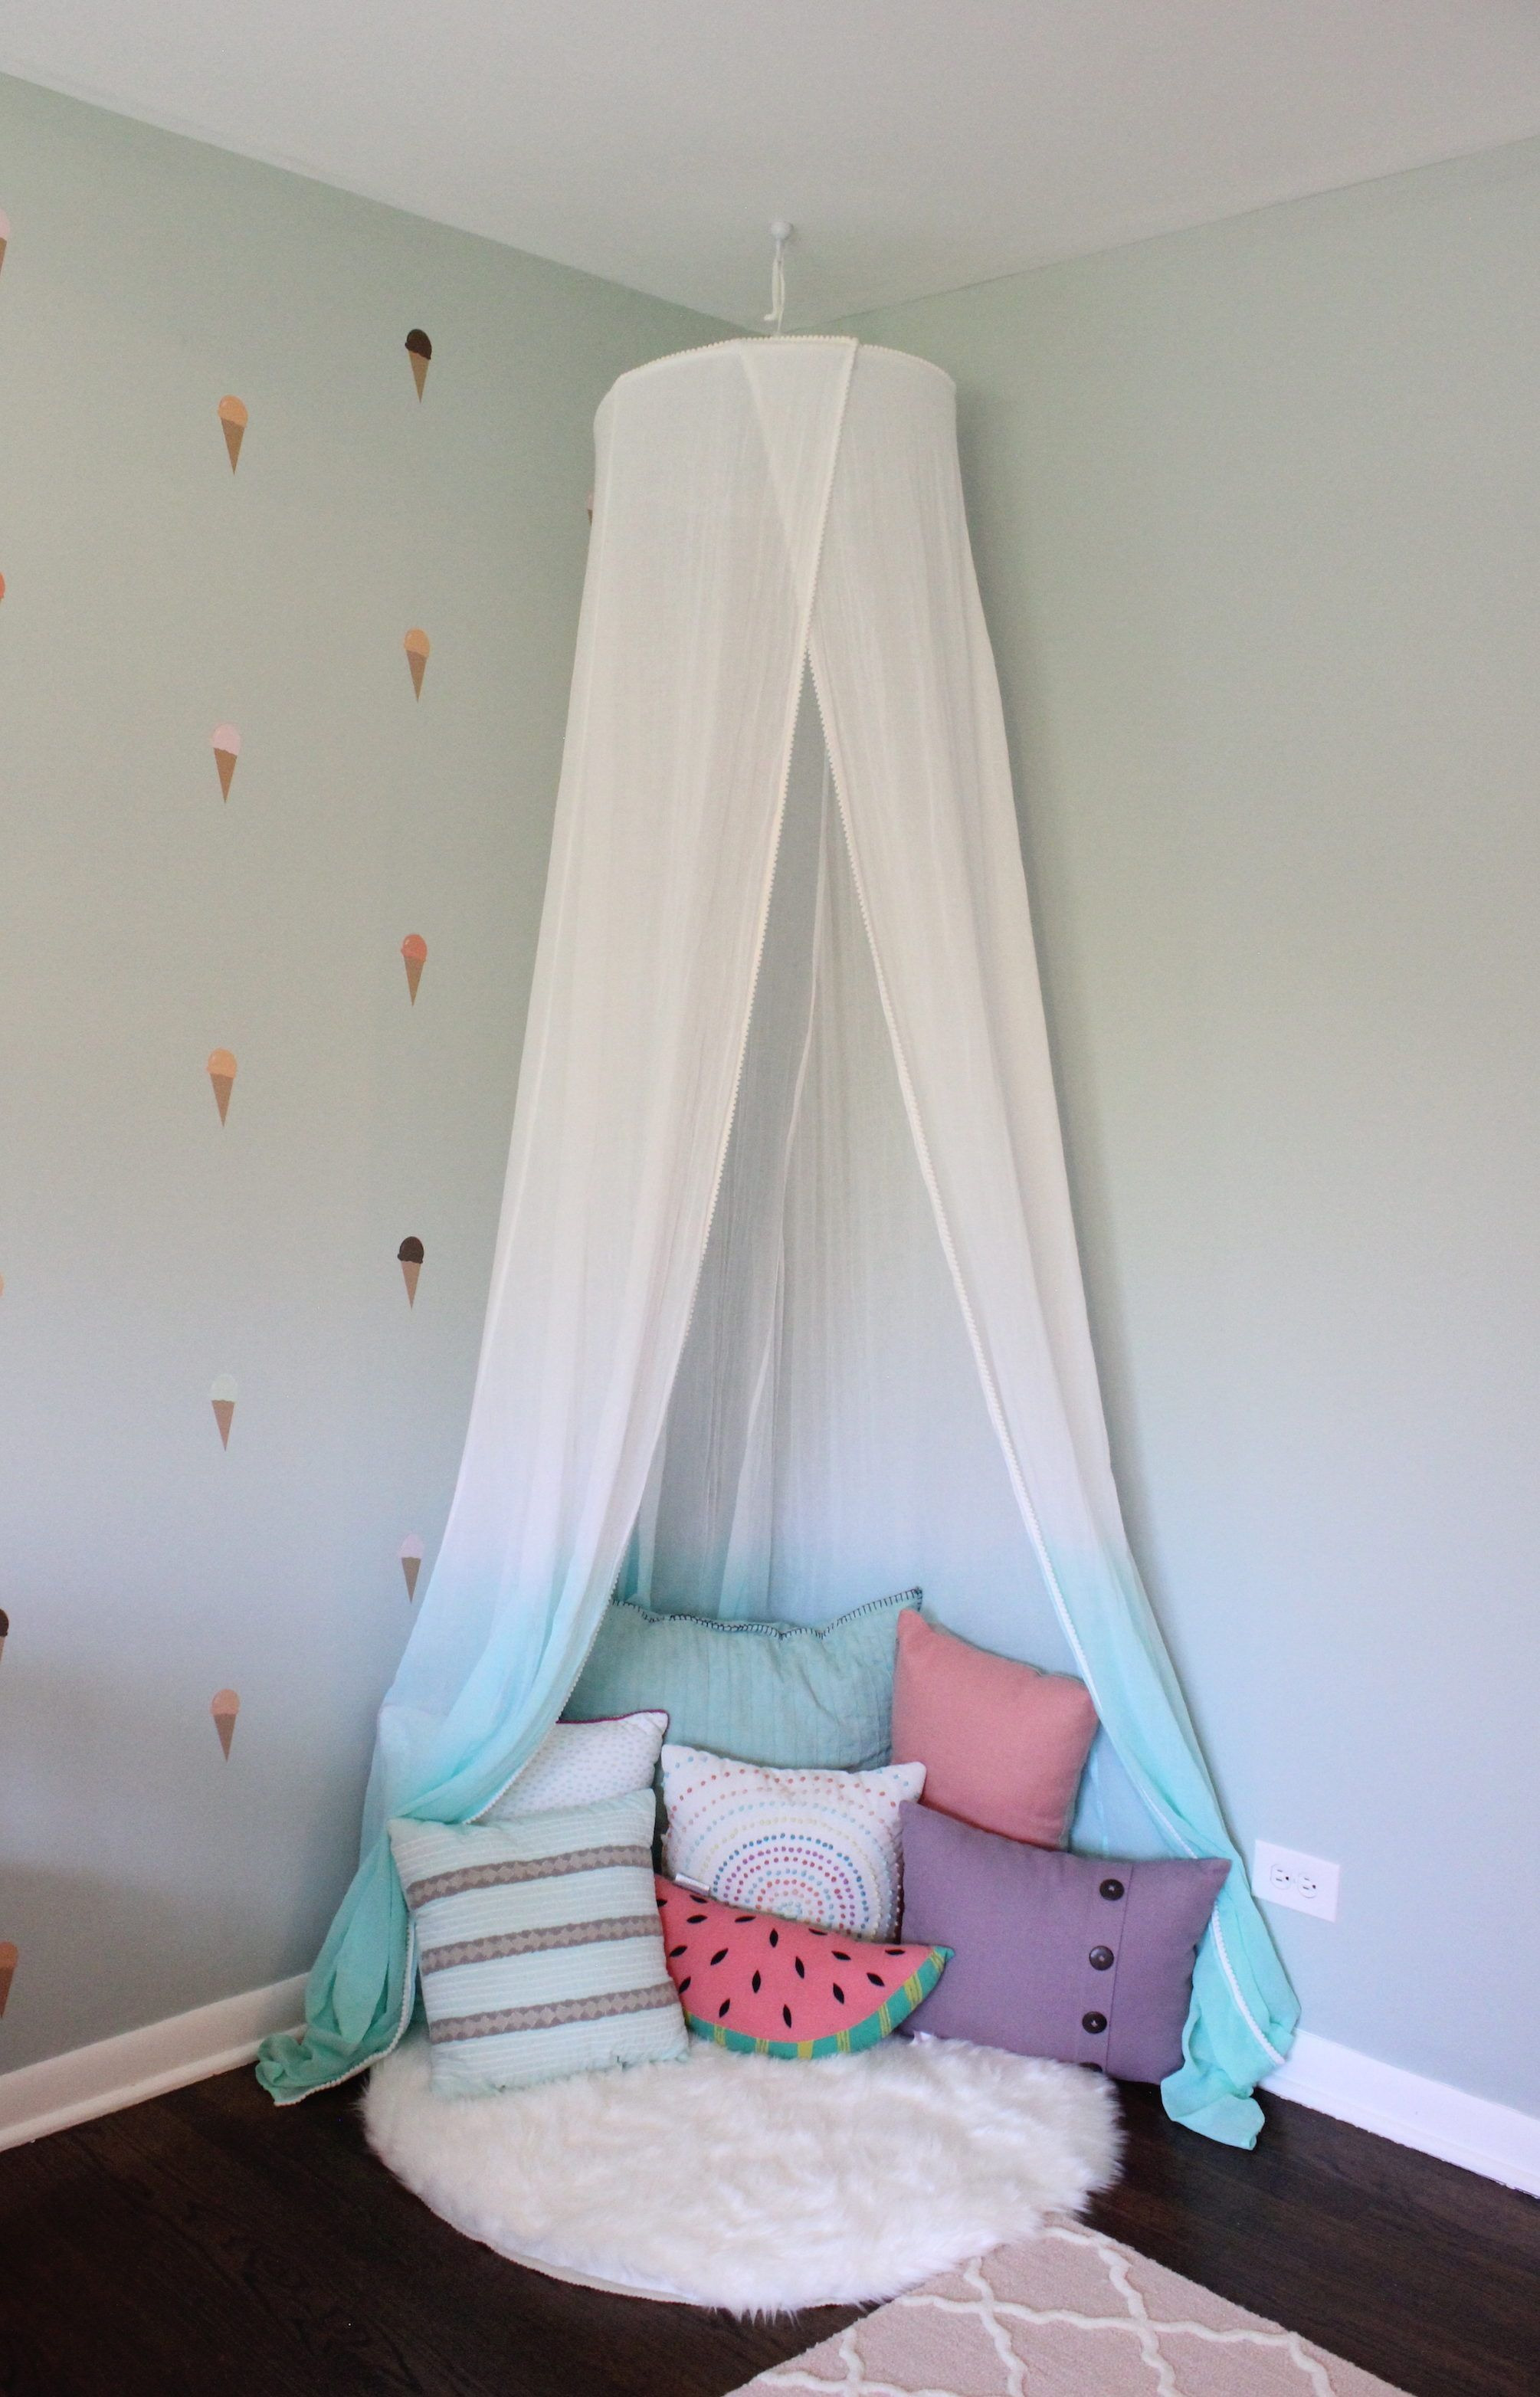 Girls Room Reading Nook With White And Teal Canopy And -2973